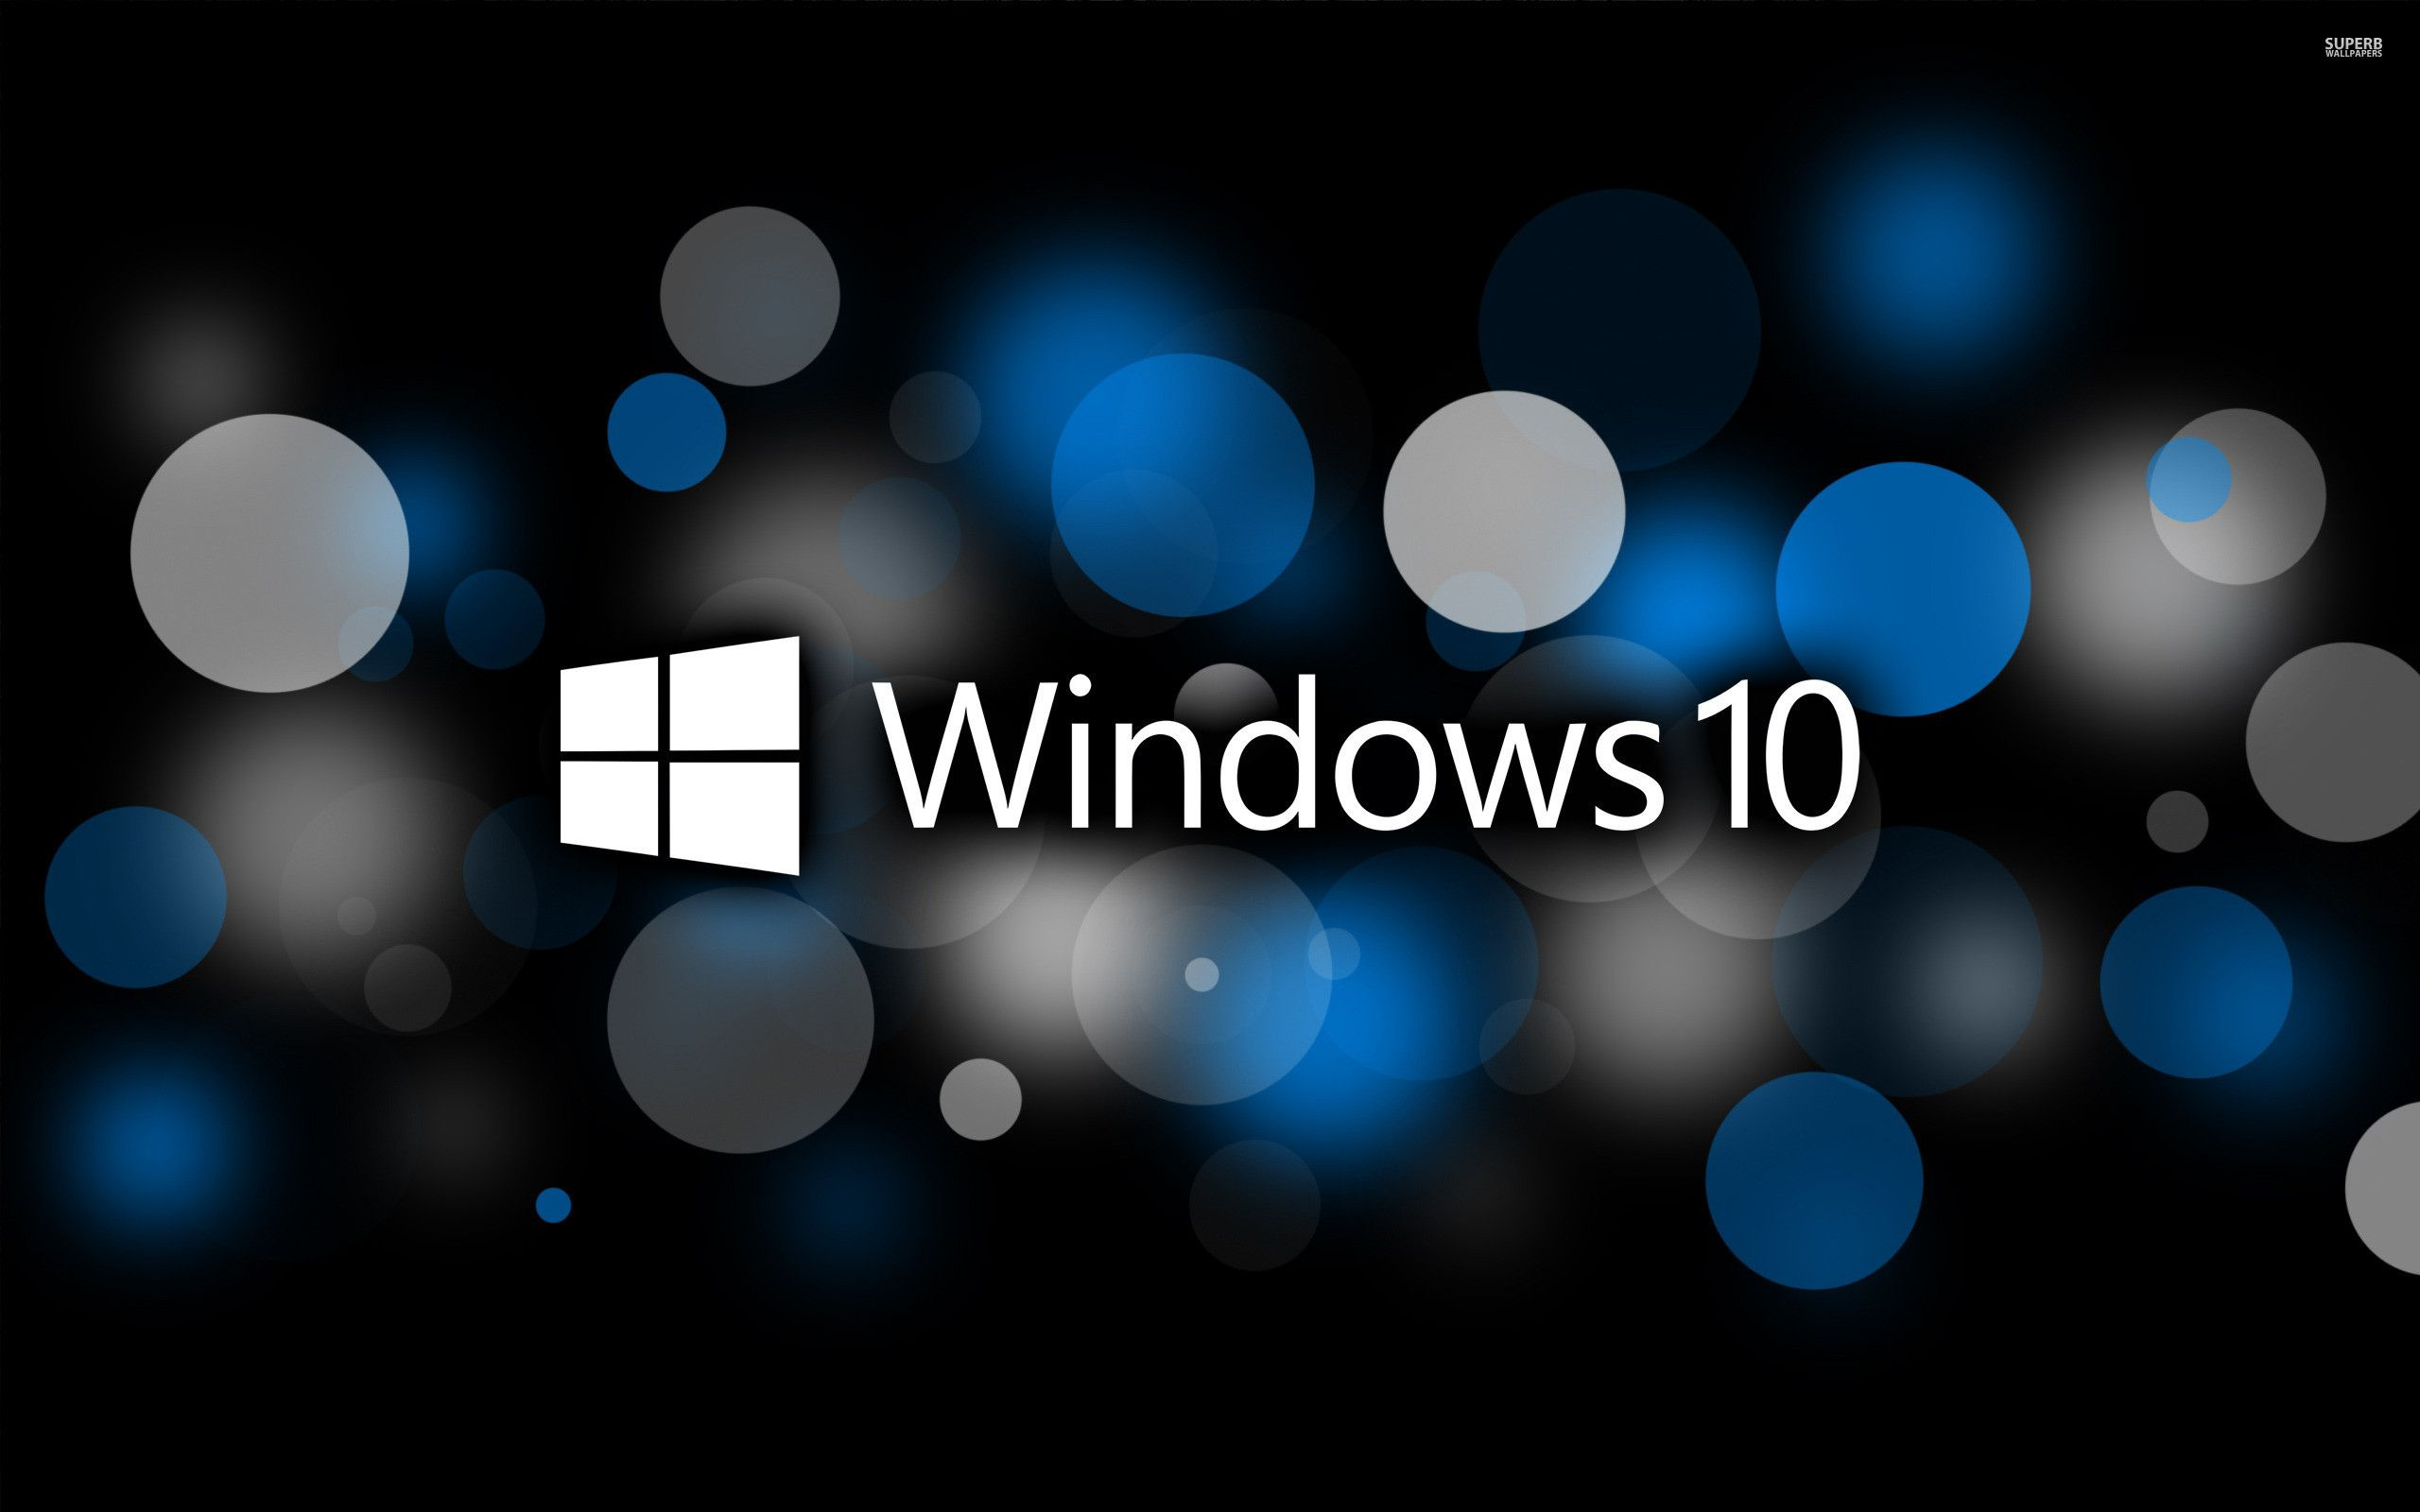 Wallpaper Hd Windows 10 Logo In 2020 Wallpaper Windows 10 Windows 10 Desktop Windows